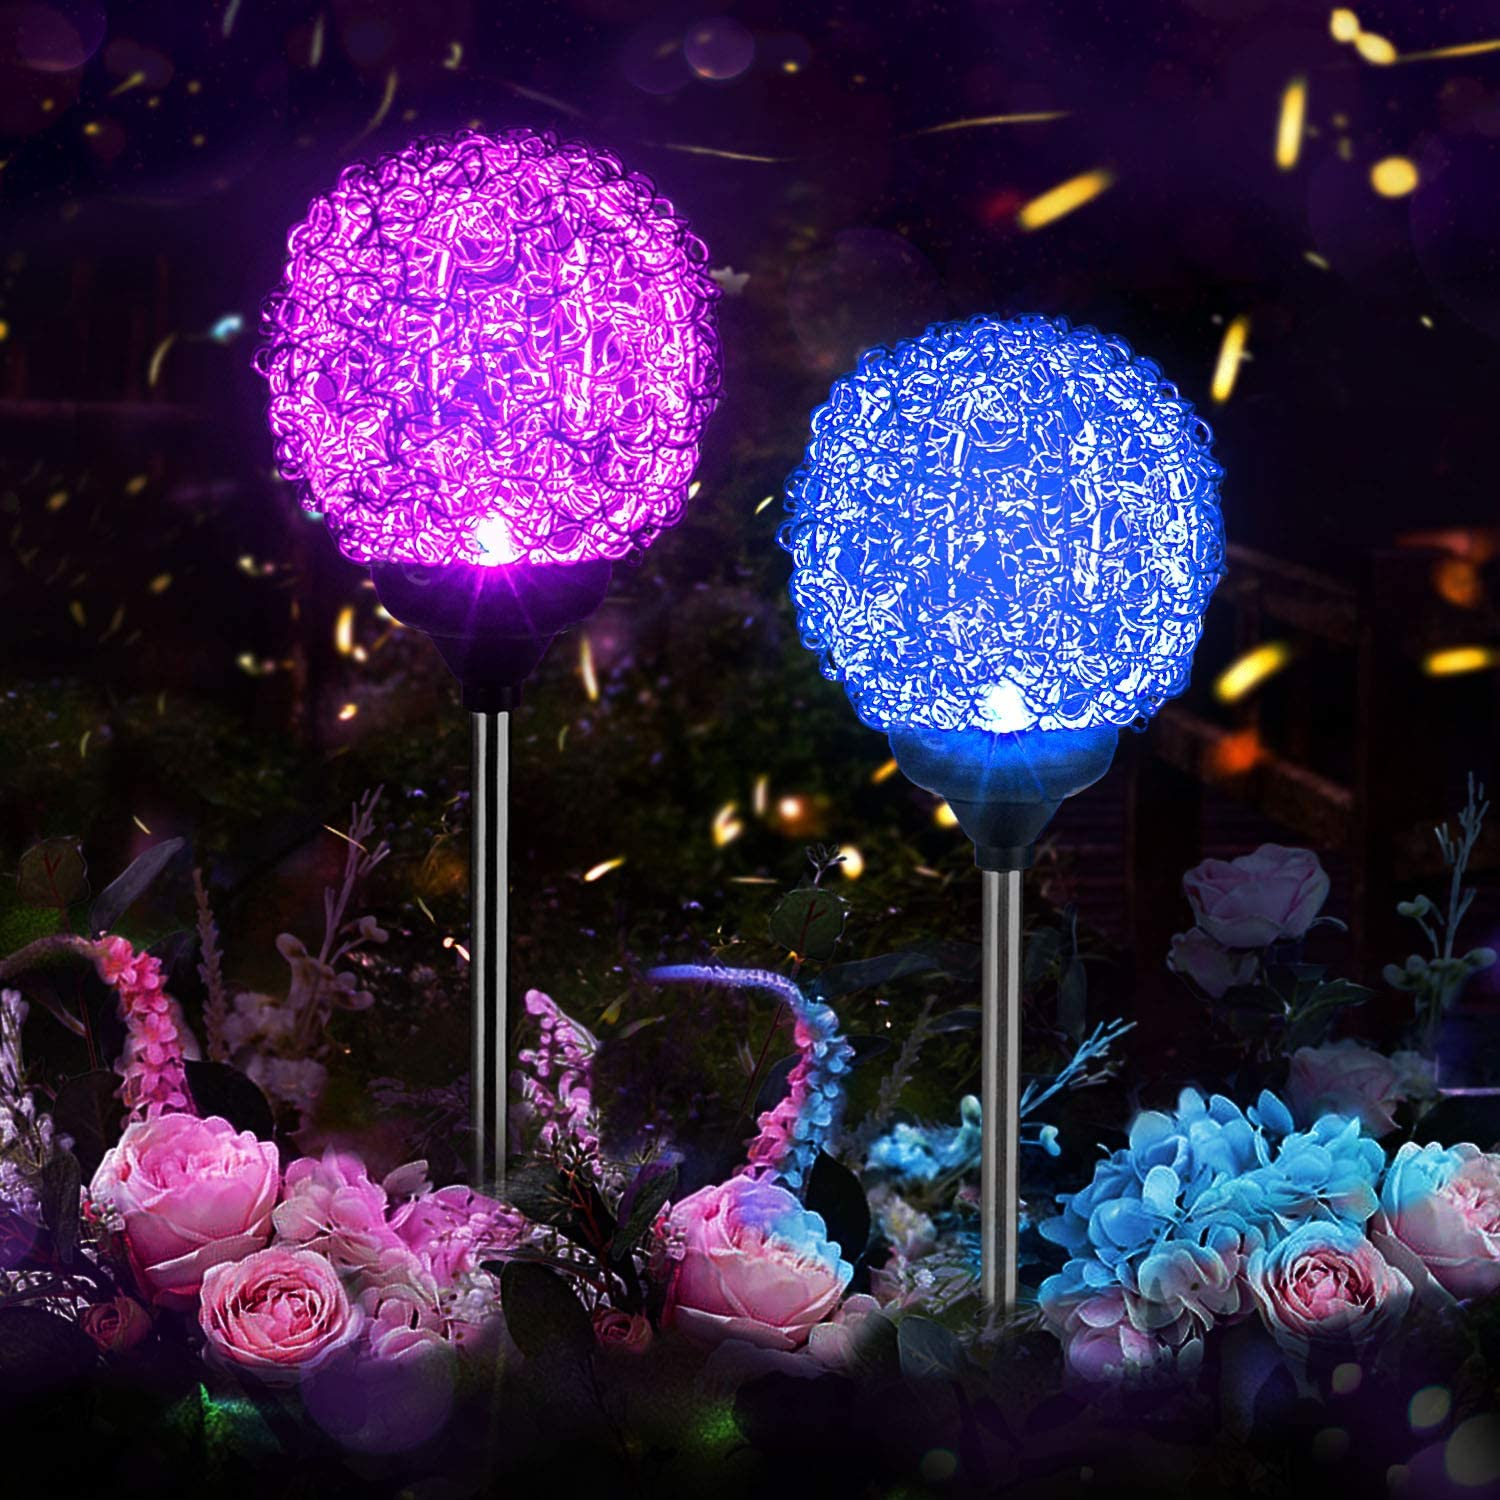 Waterproof LED Solar Powered Flower Lights,Outdoor Garden Colourful Rose Stake Lamp for Garden Patio Yard Pathway Party Holiday Decoration Solar Garden Lights